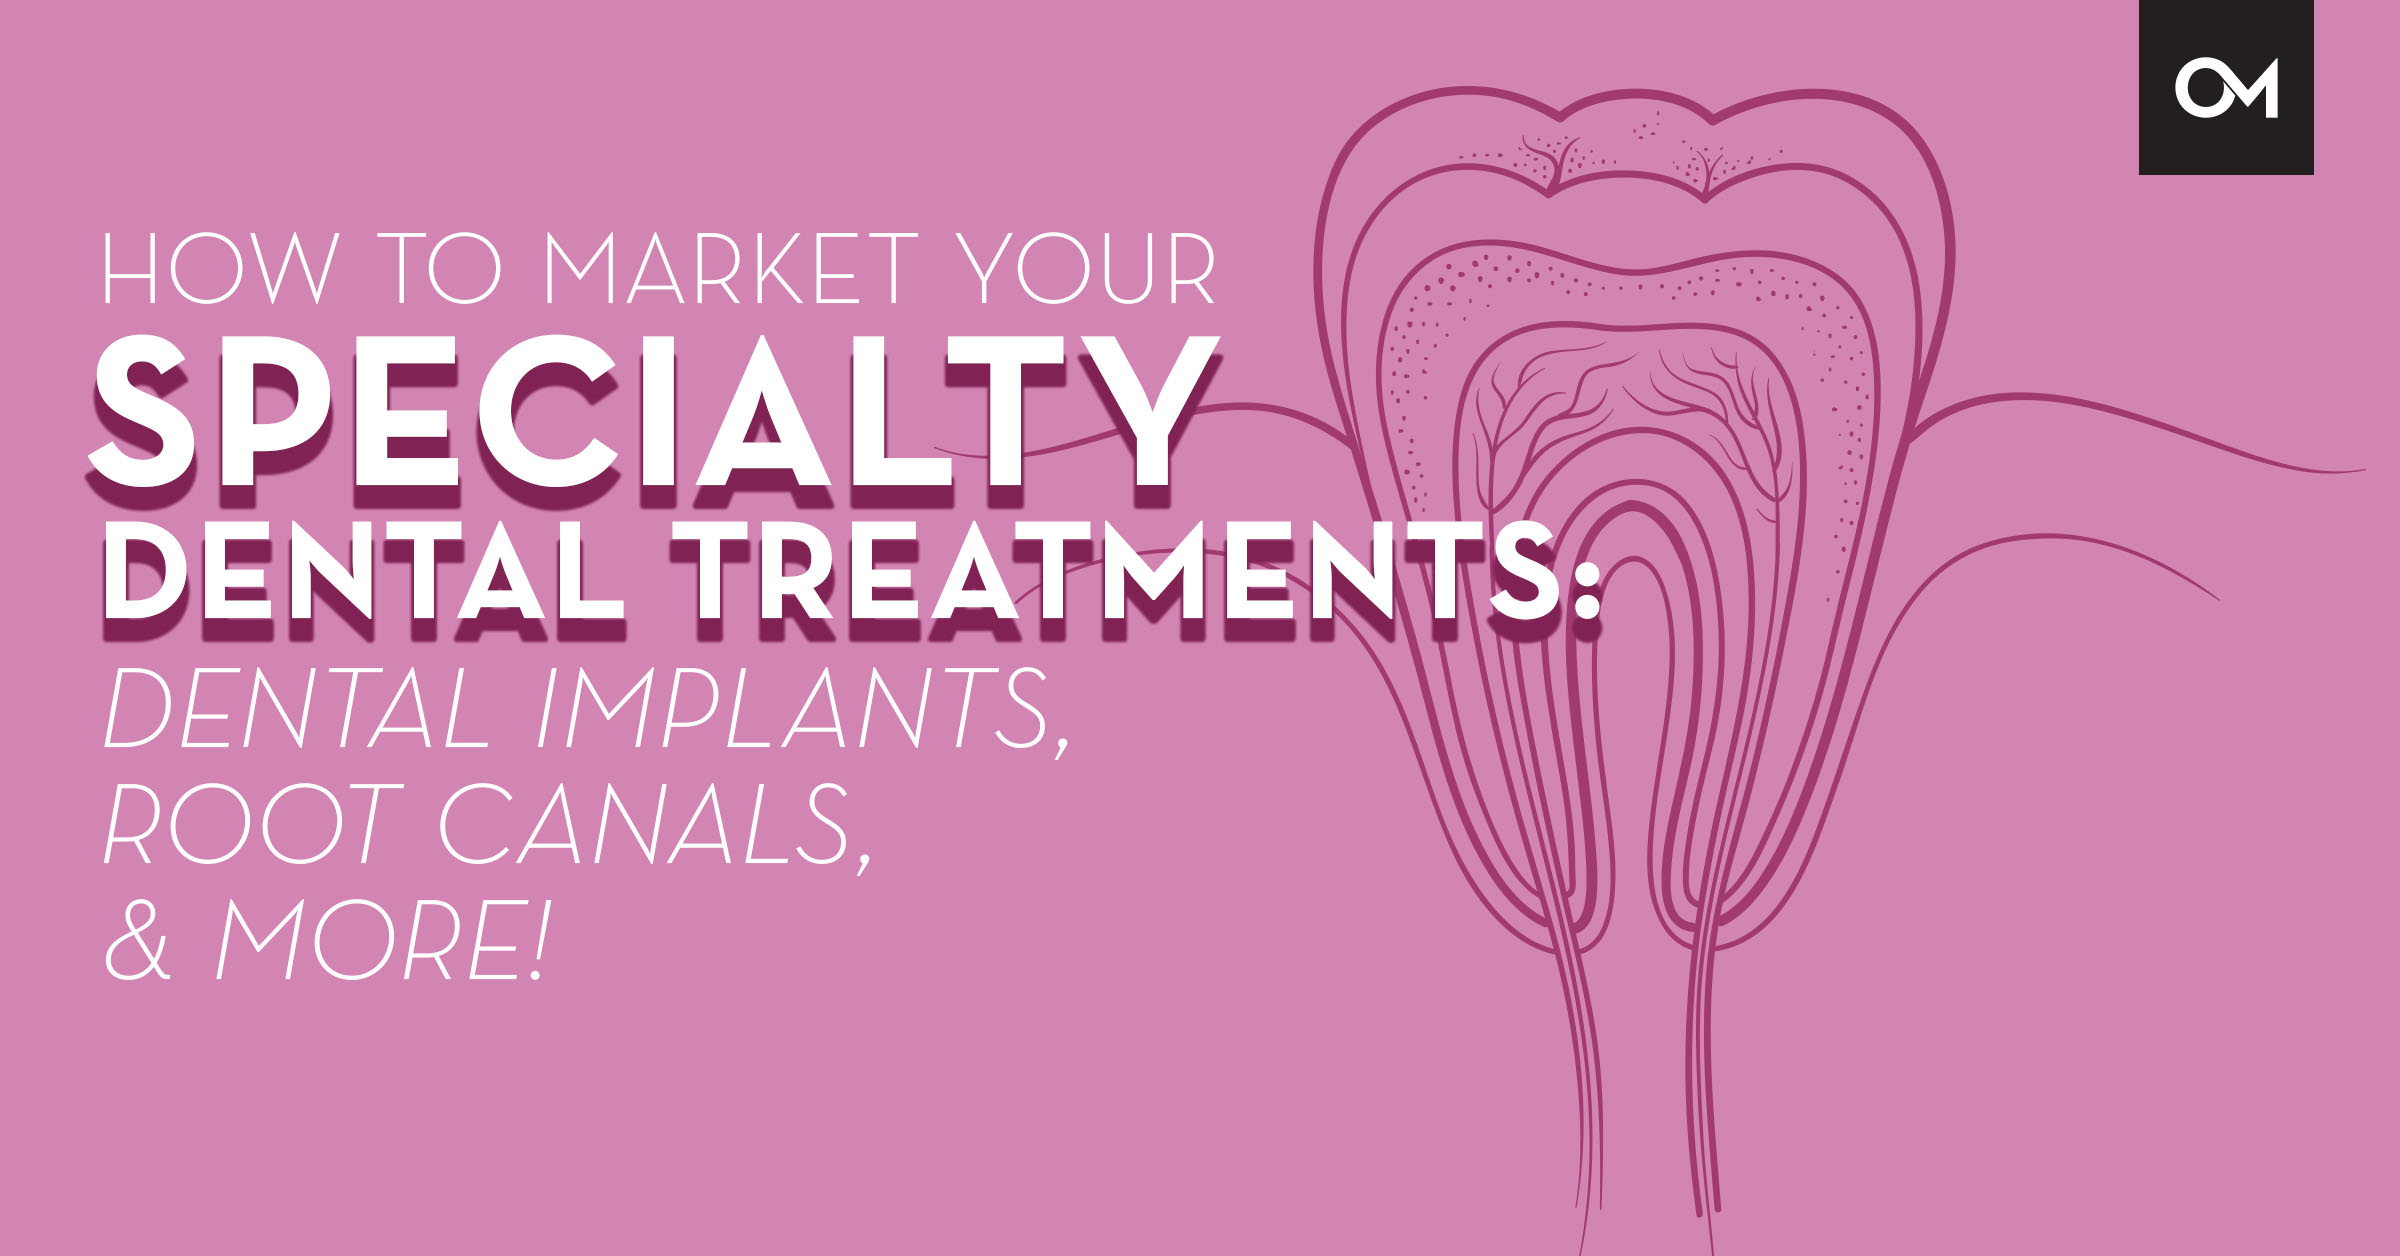 How to market your specialty dental treatments